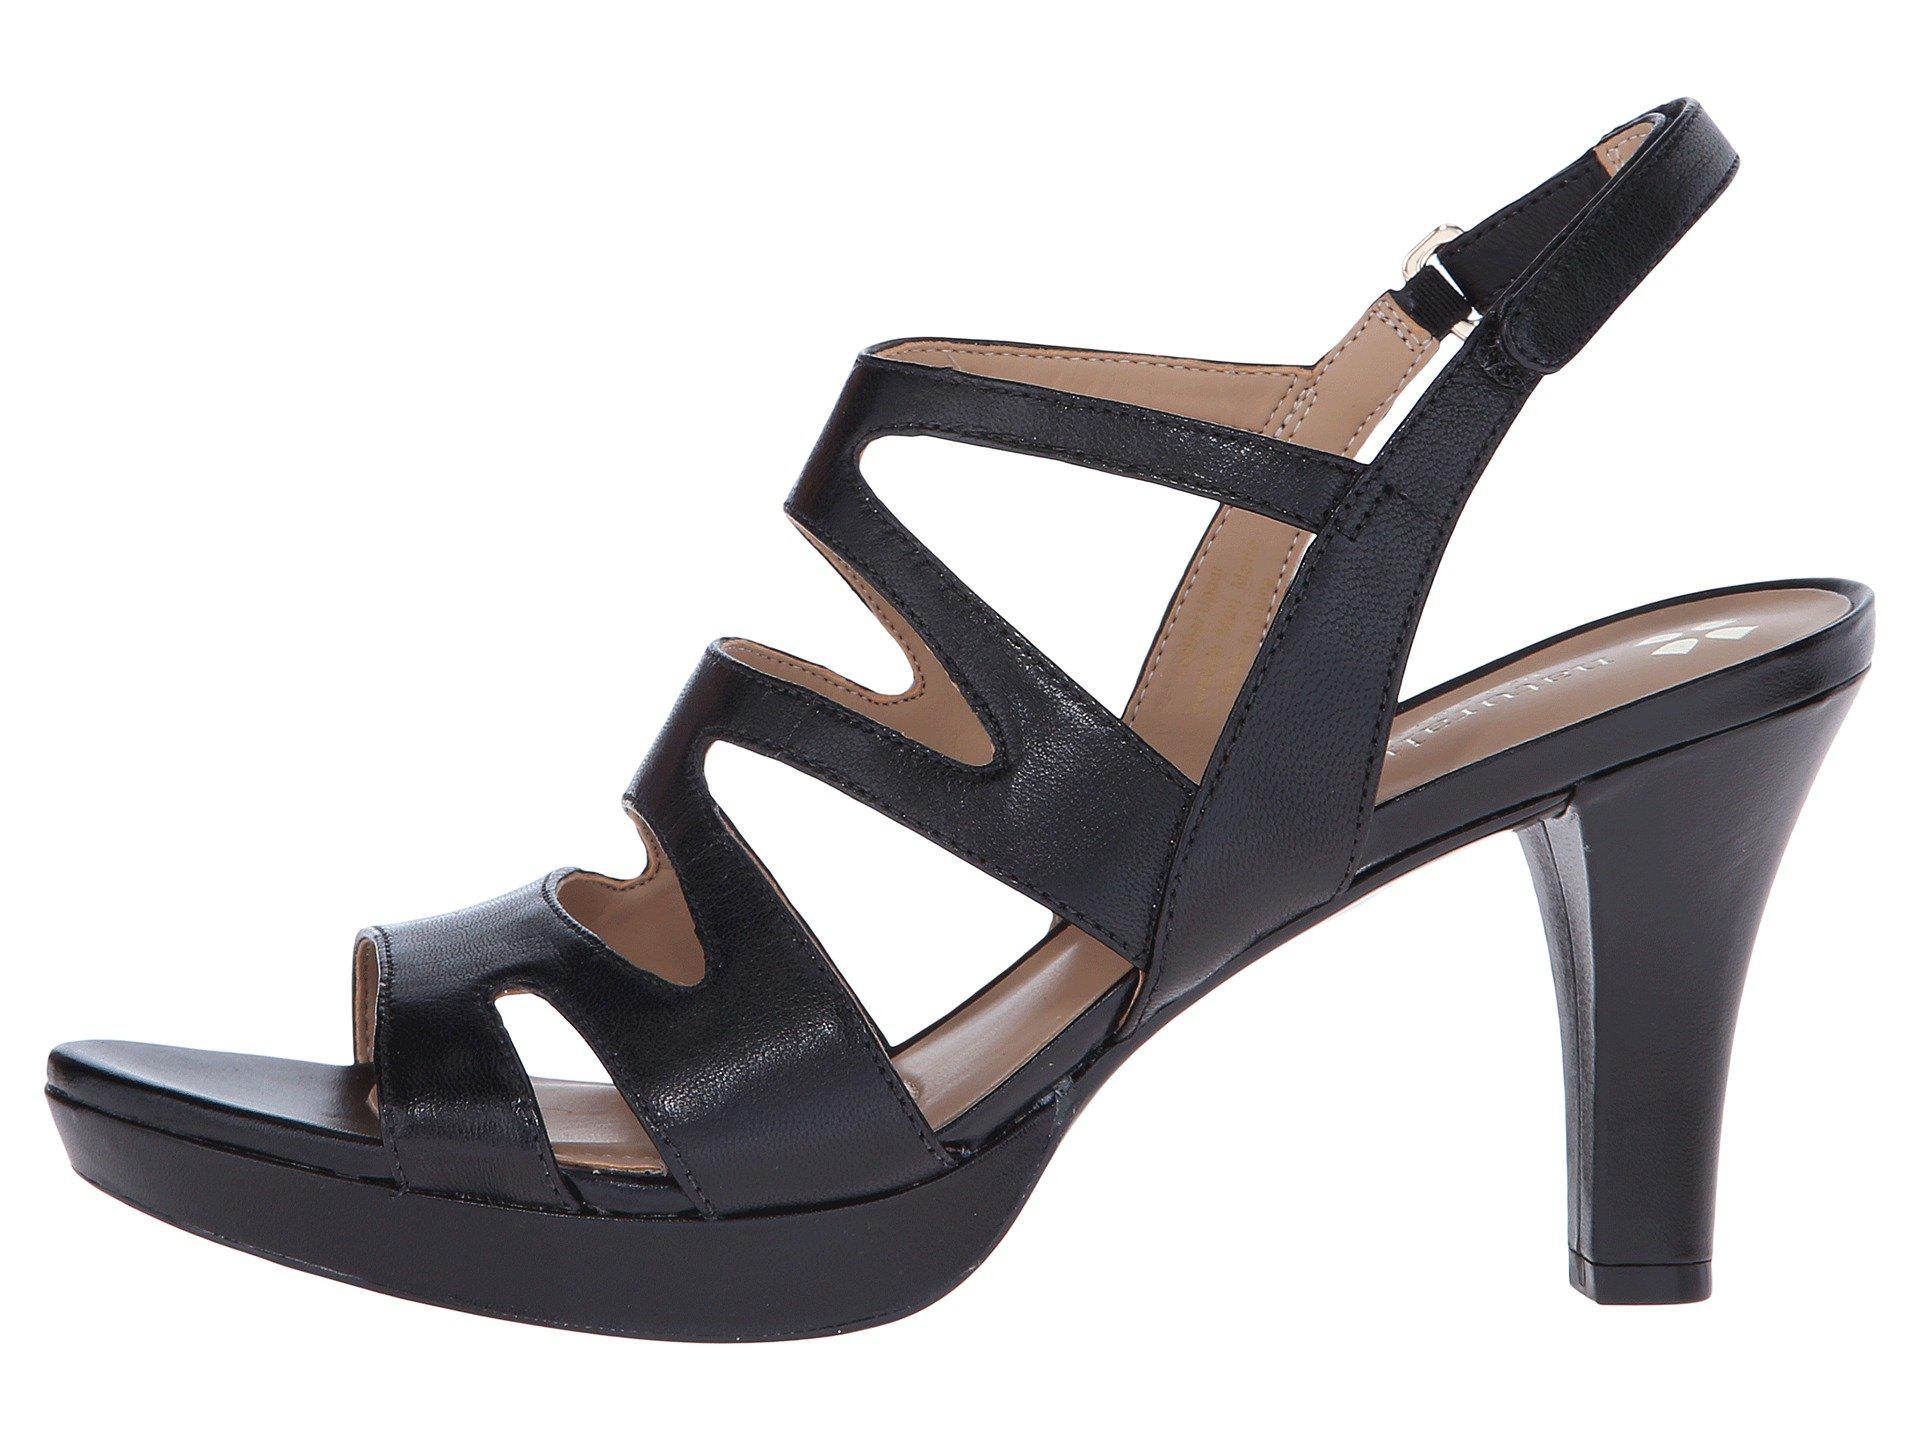 e31c1c6bebb0 Lyst - Naturalizer Pressley (taupe Leather) High Heels in Black